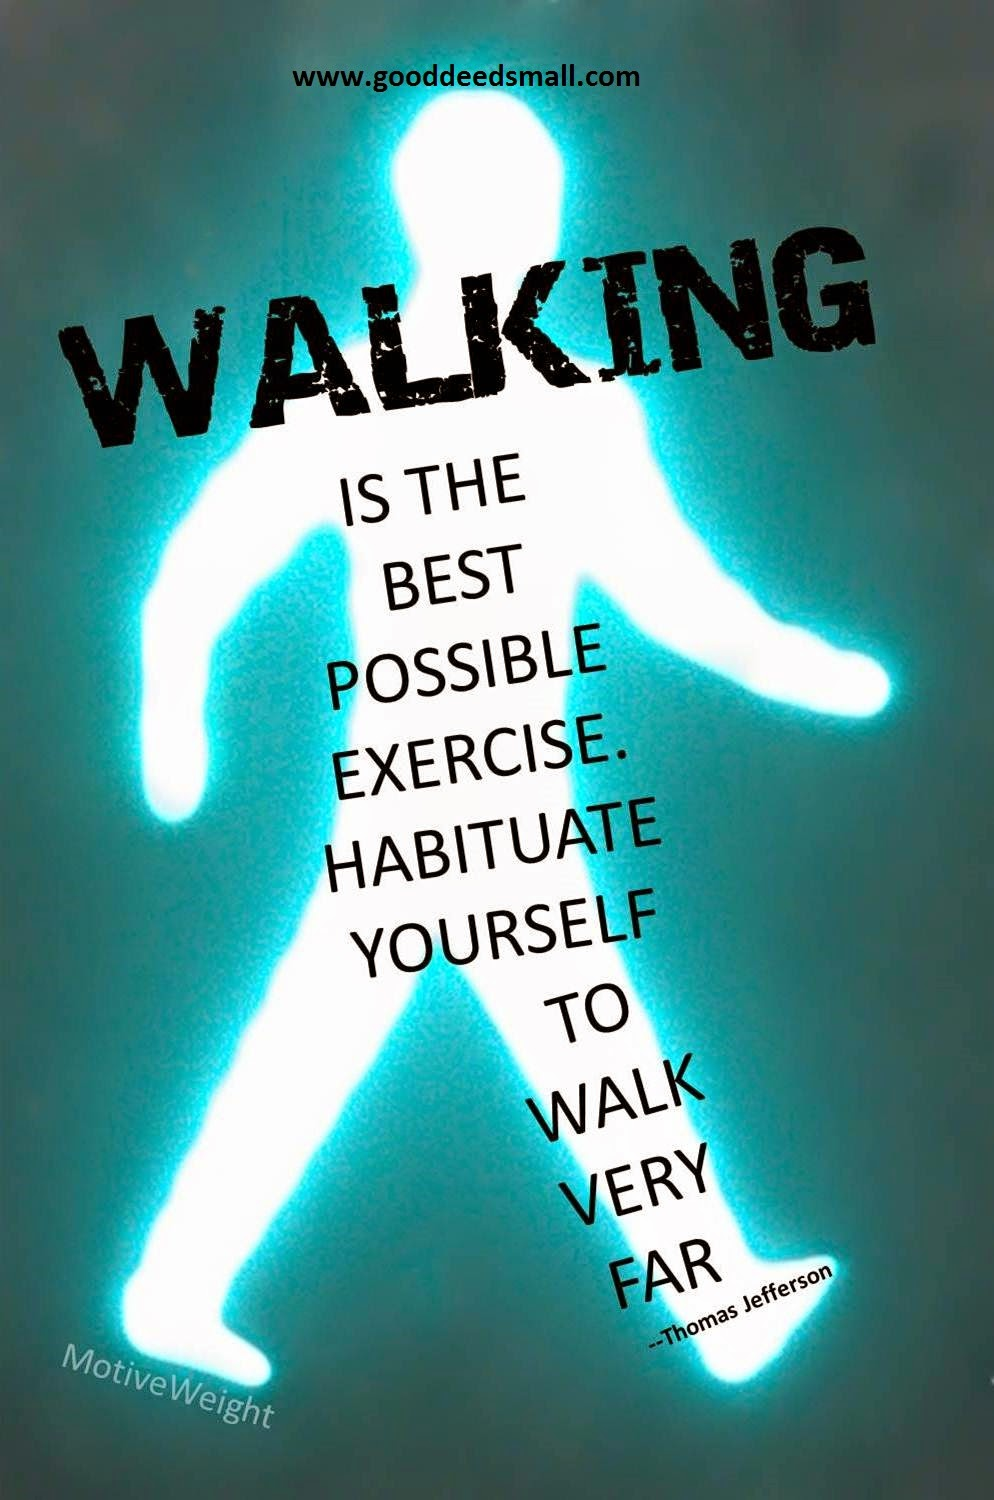 walking is good for you